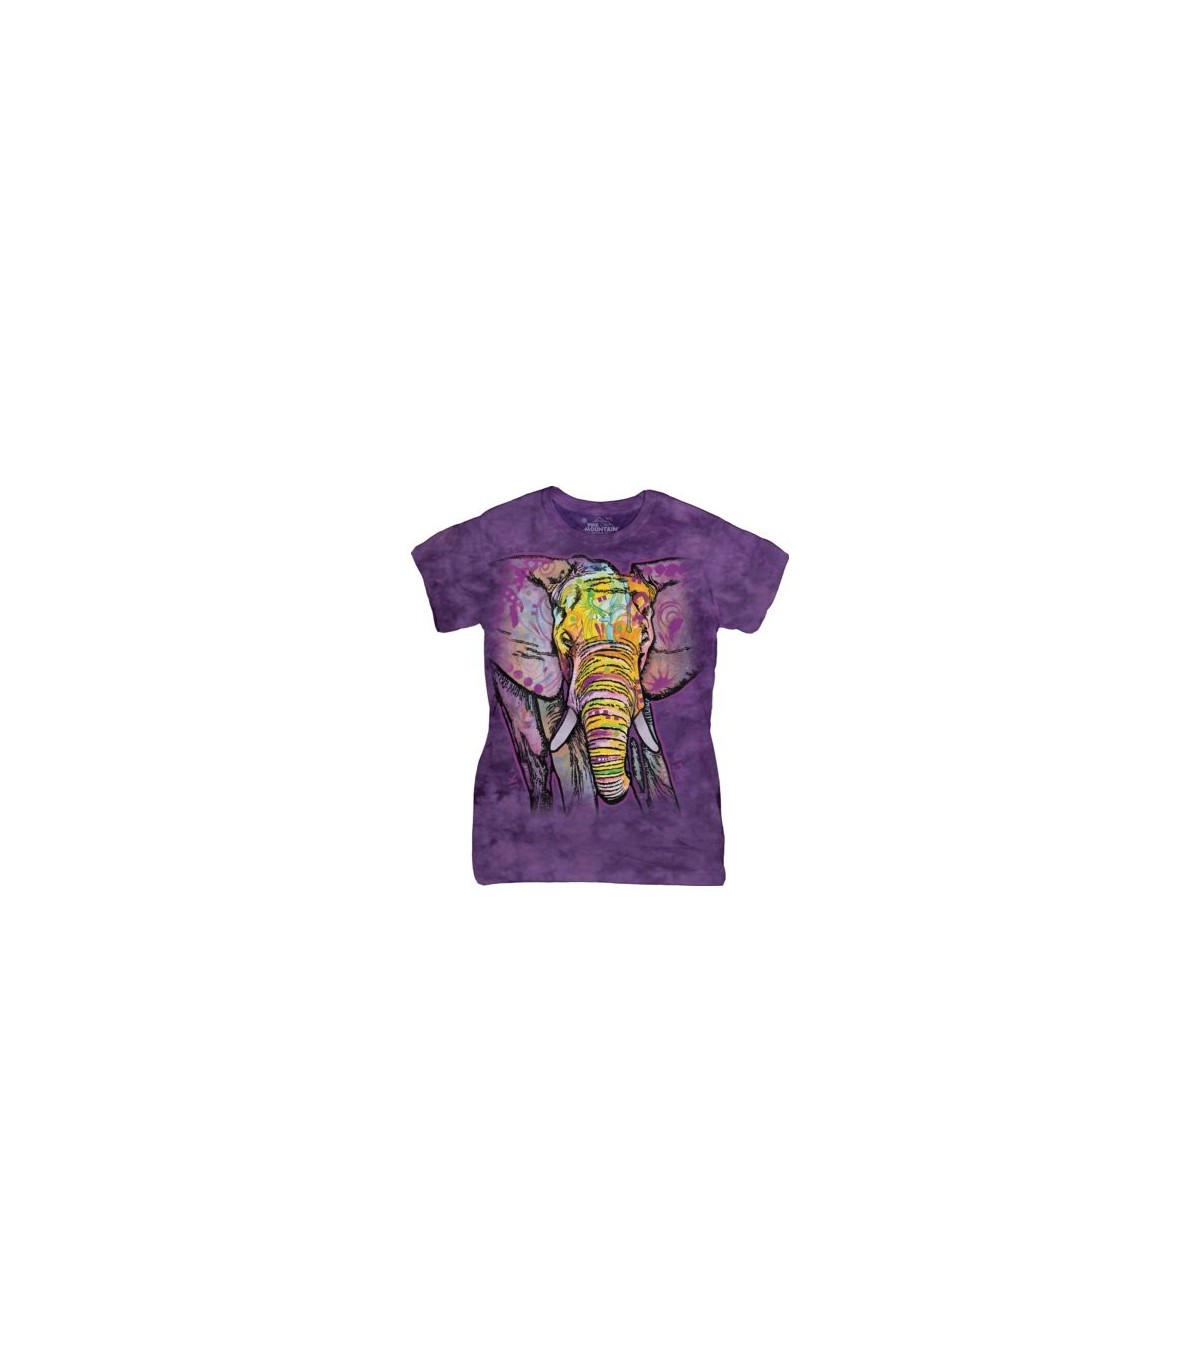 3927a2afa1c2 the-mountain-ladies-russo-elephant-animal-t-shirt.jpg